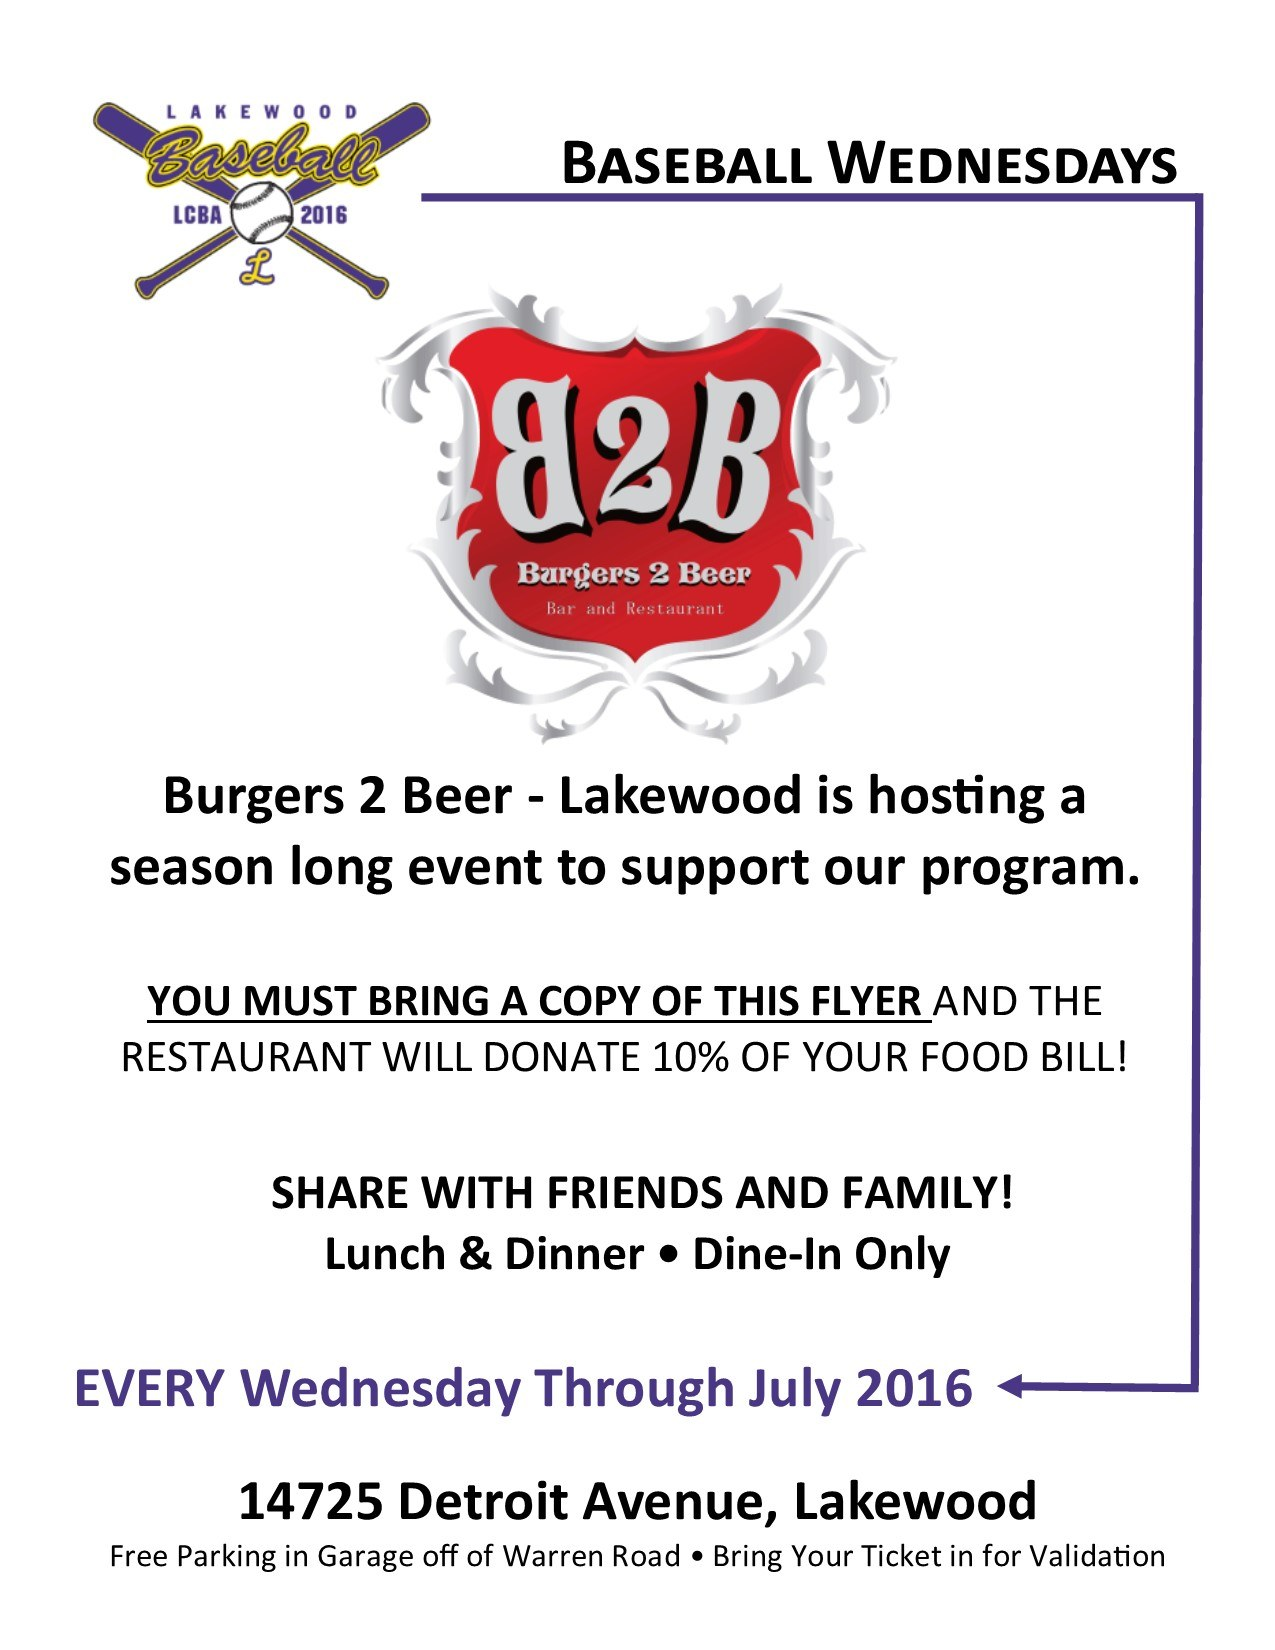 Baseball Wednesdays at Burgers 2 Beer through July